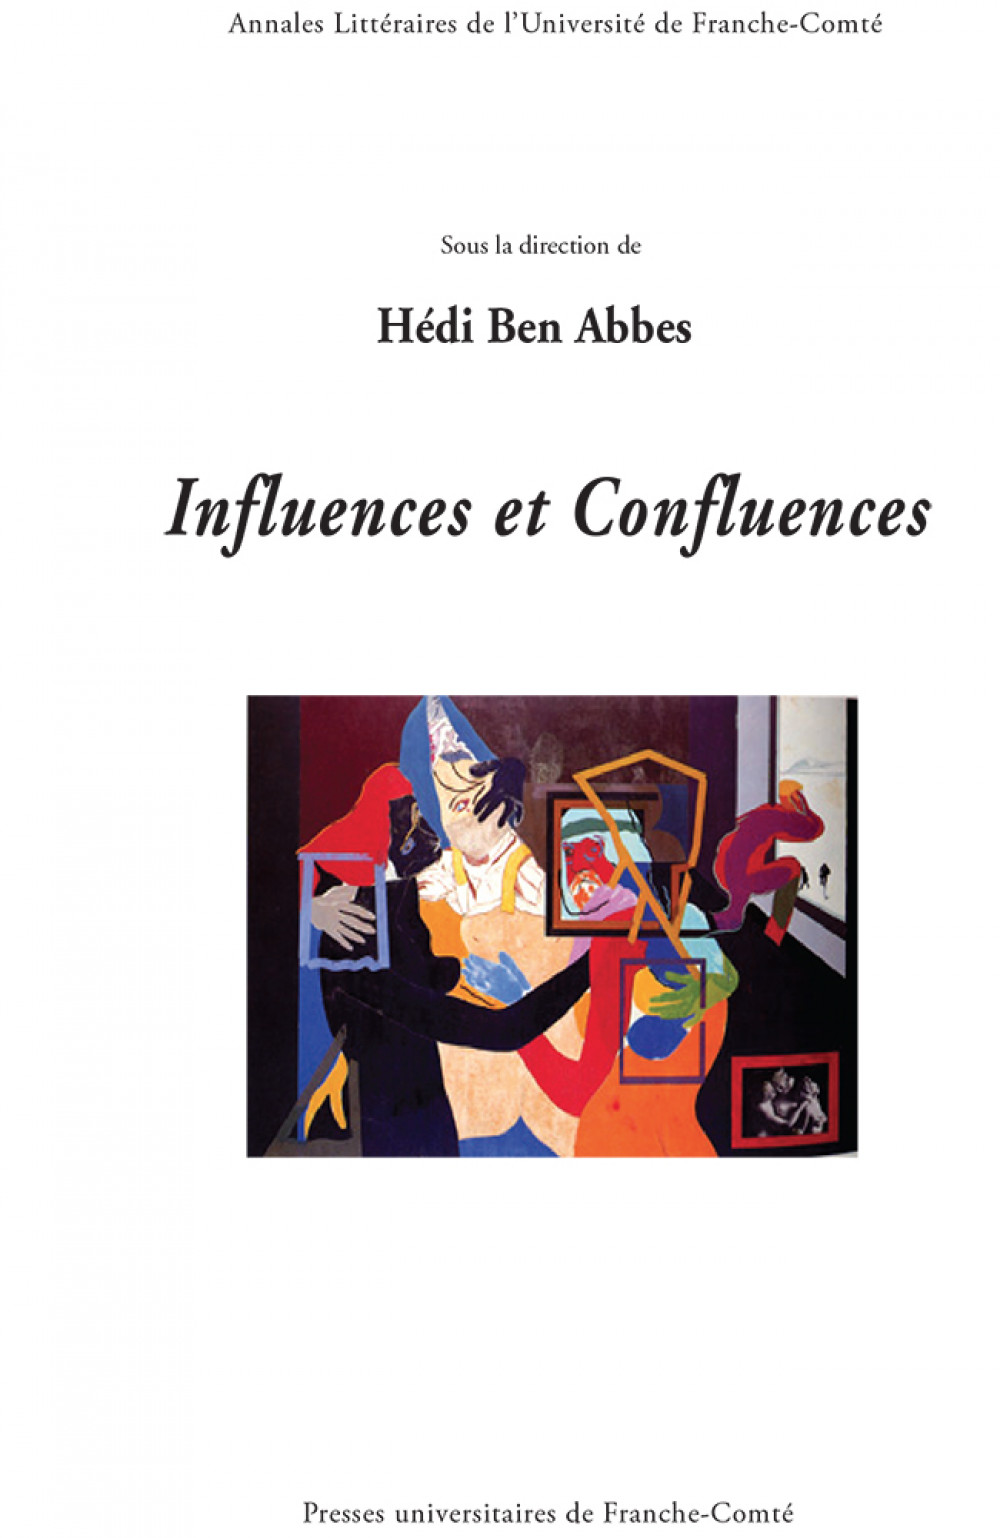 Influences et Confluences